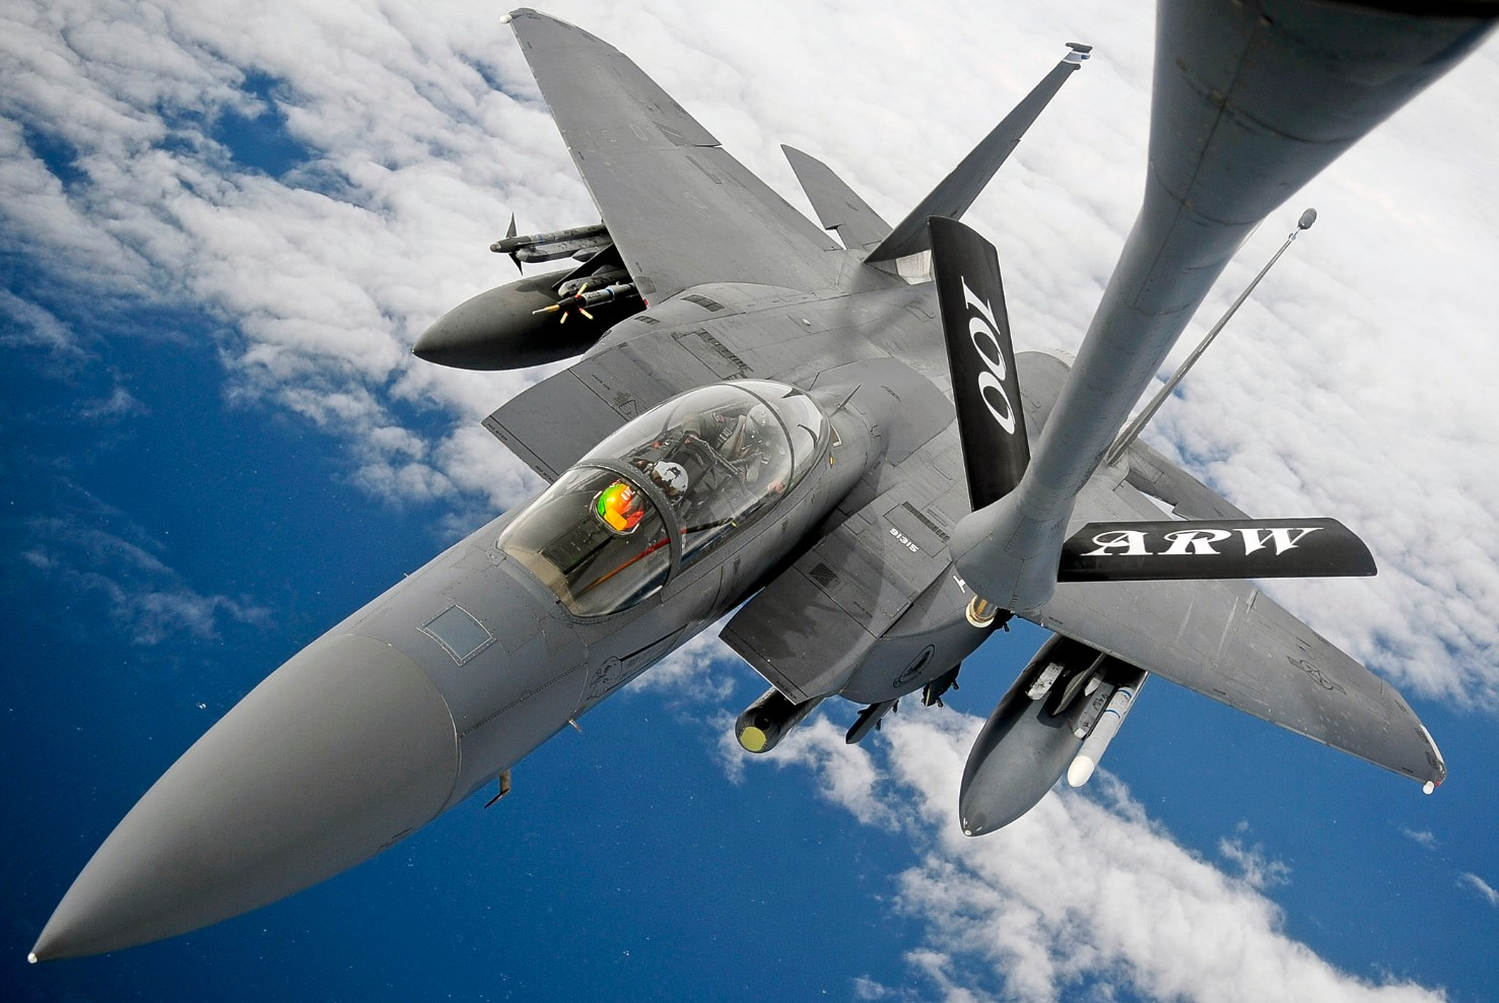 drone strike ye with F 15 Air Refueling on Boeing F 15 Strike Eagle wallpapers 17332 1024x768 1 further F 15 Air Refueling in addition Mystery Missile By Boeing additionally UN Hosts Aidpledging Conference For Beleaguered Ye also Timmo Hendriks Saberz Drone Original Mix Free Download.